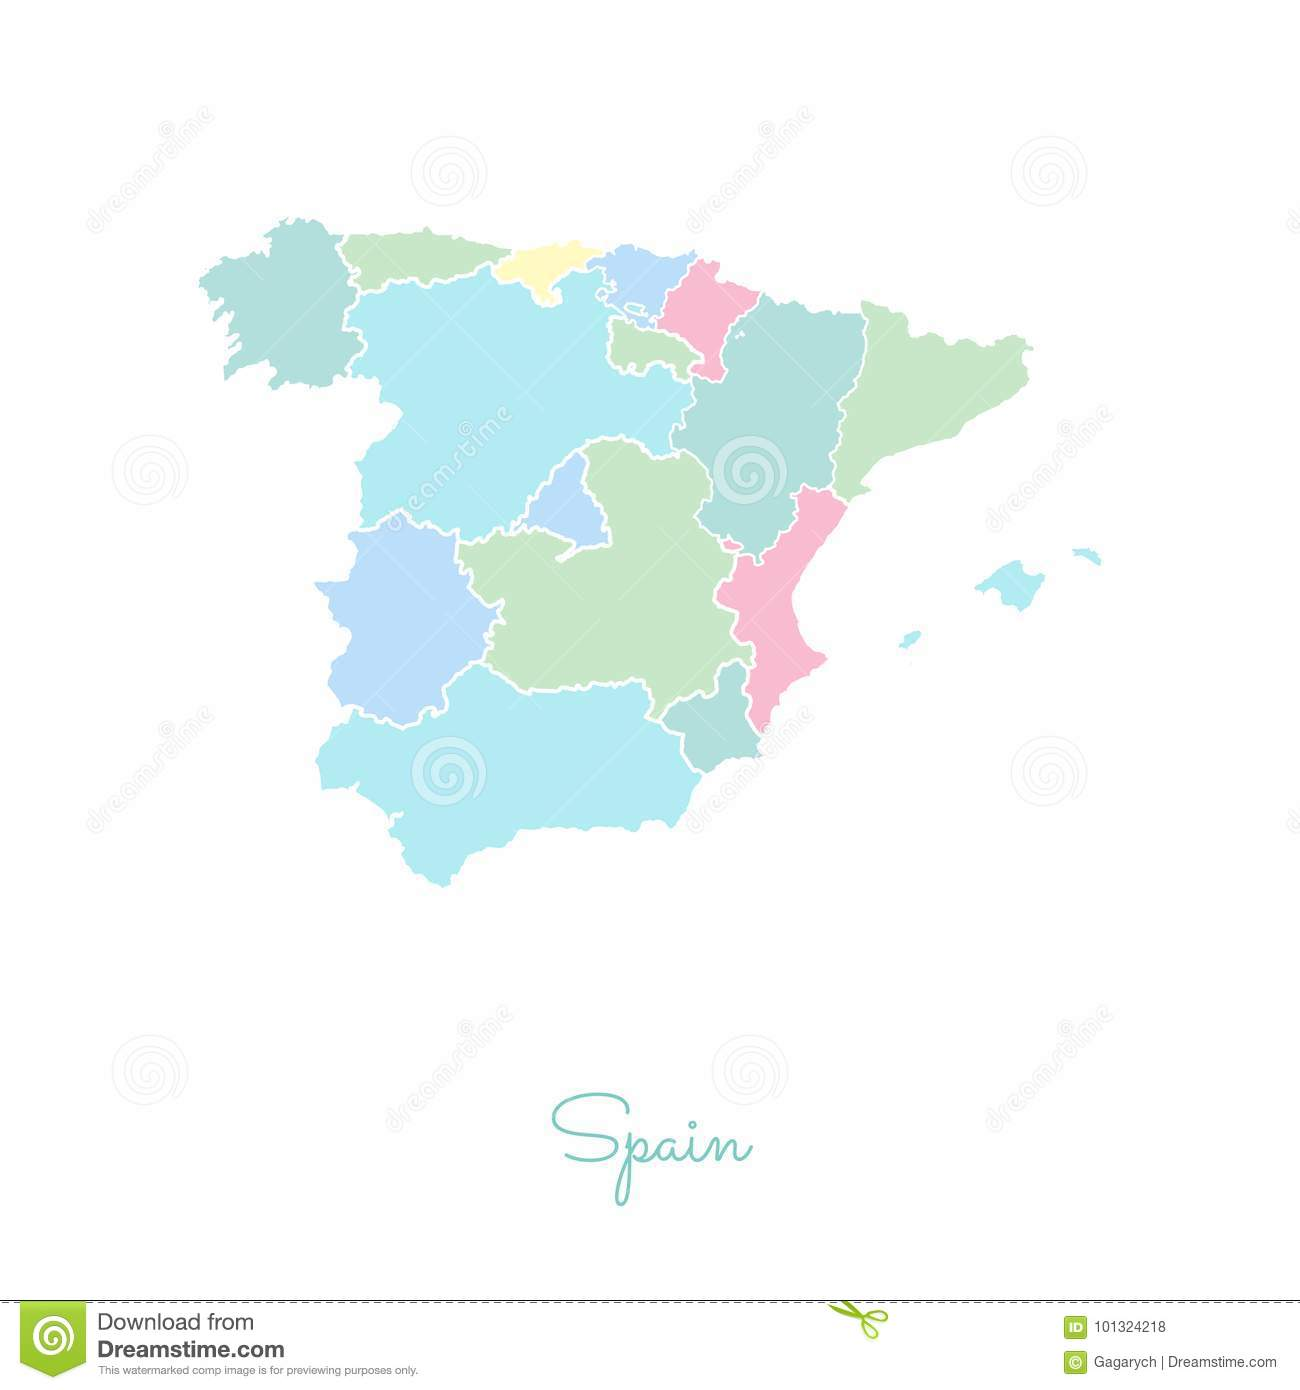 Map Of Spain By Region.Spain Region Map Colorful With White Outline Stock Vector